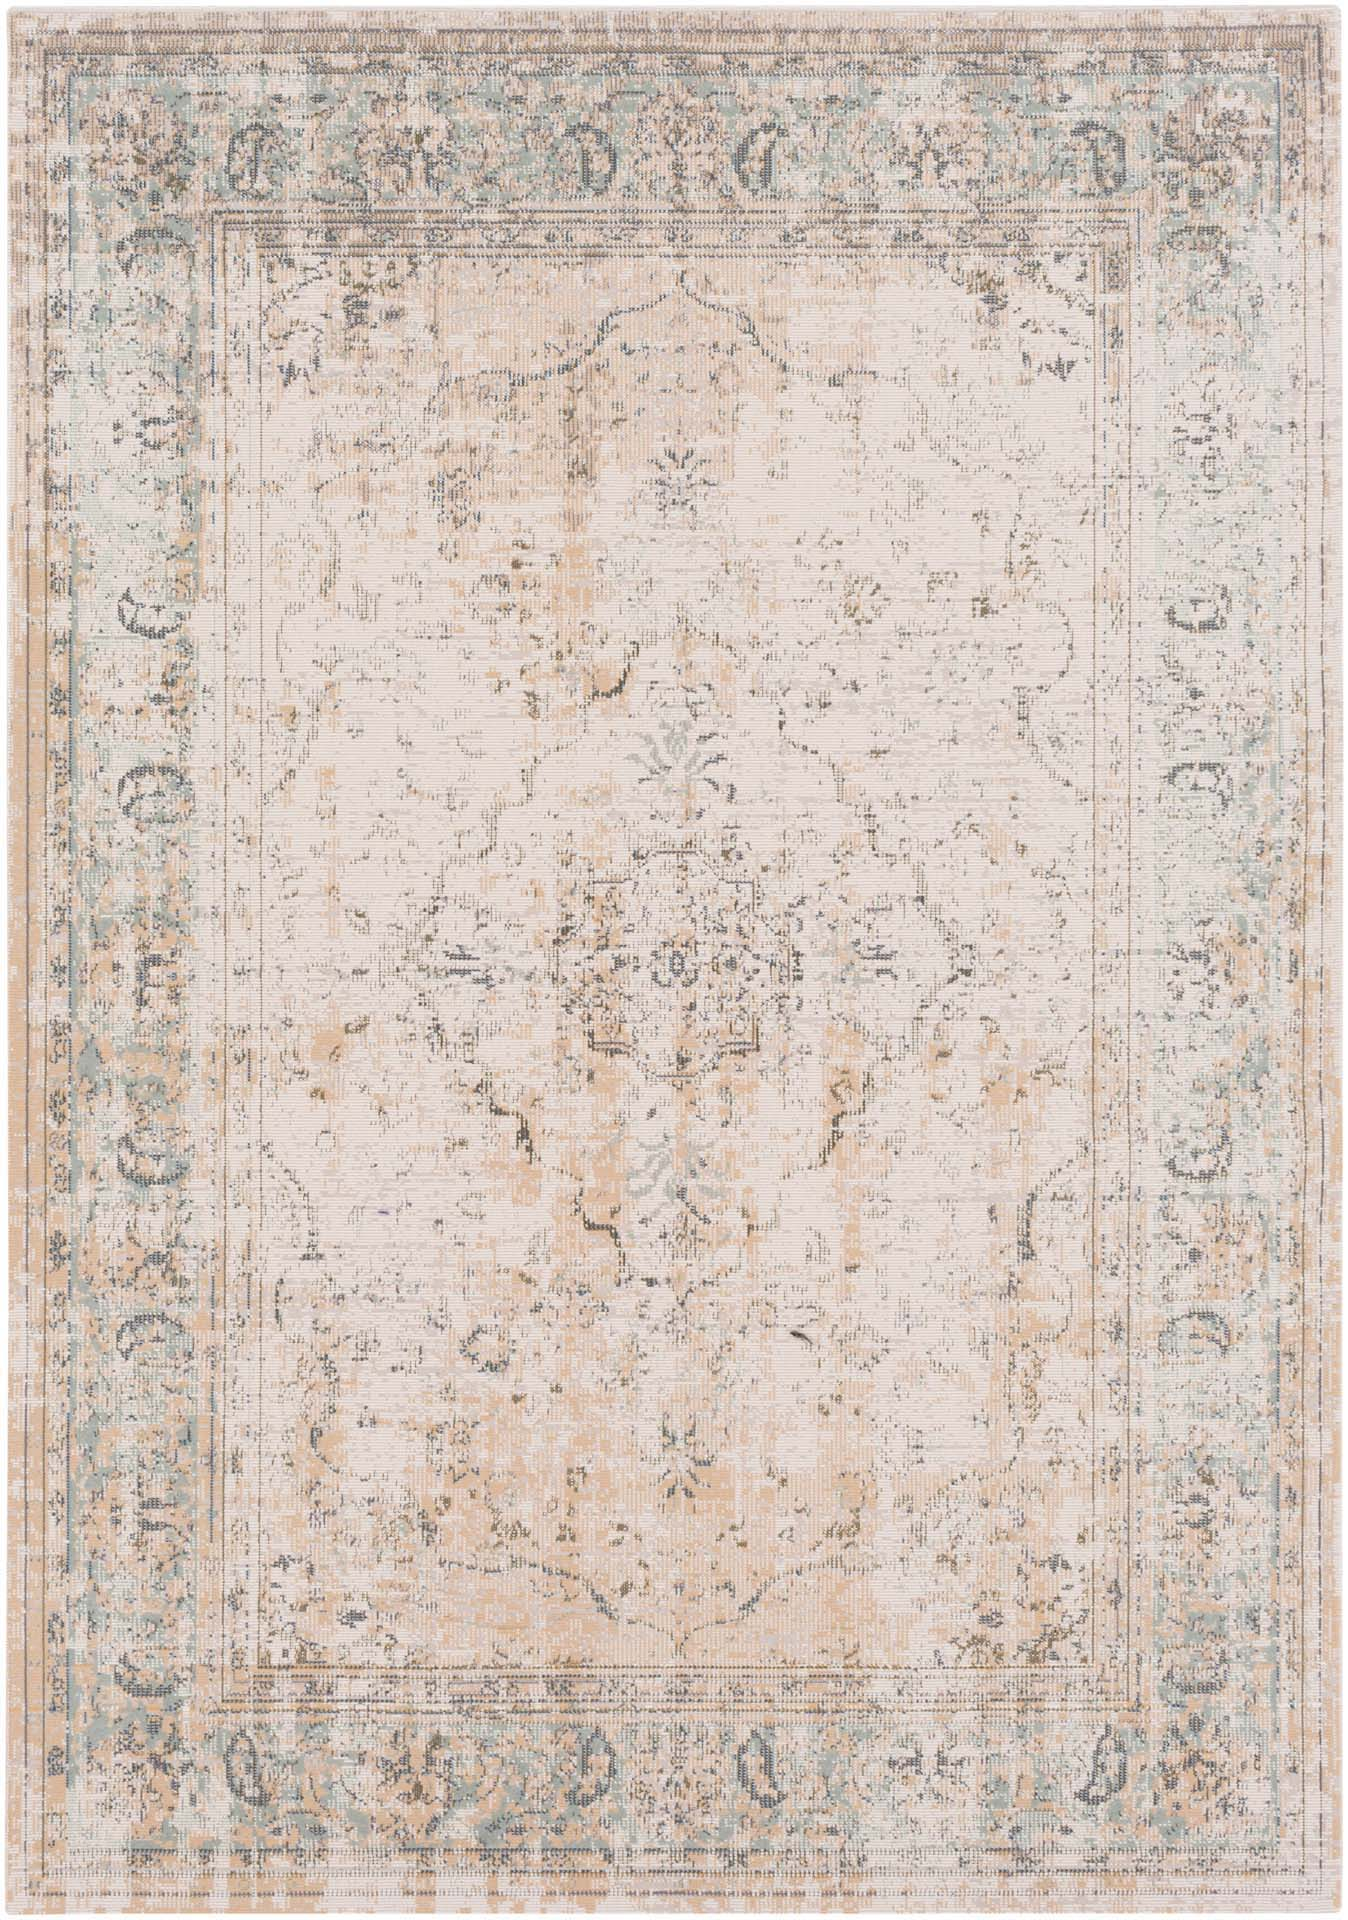 Traditional area rug with faded washed coloring in neutral tones.